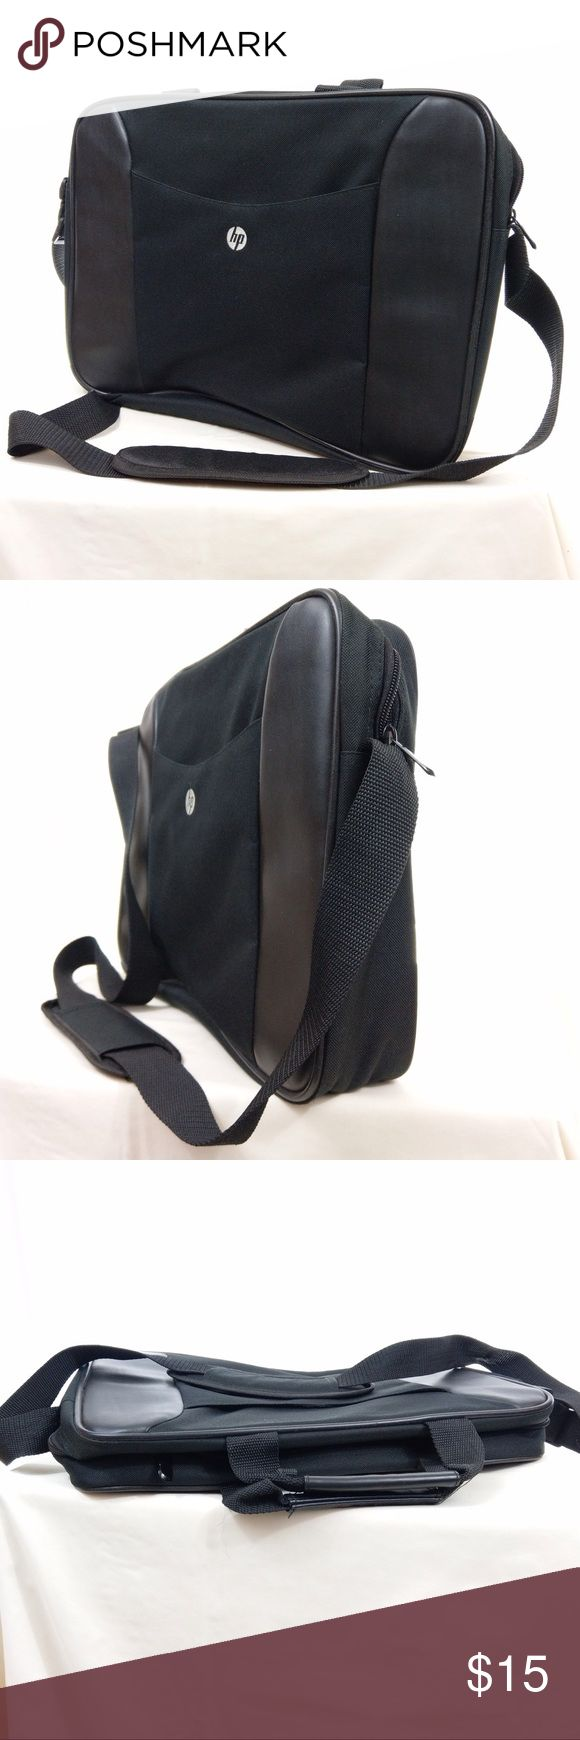 """HP Basic Laptop Carrying Case 453781-001 This HP laptop bag is simply designed and the interior has dual compartments. Exterior has Velcroed pocket. It is lightweight and fits up to a 15.4"""" laptop. Has 2 handles and strap. Made from nylon. Bag is in great used condition. (Area 10) HP Bags Laptop Bags"""